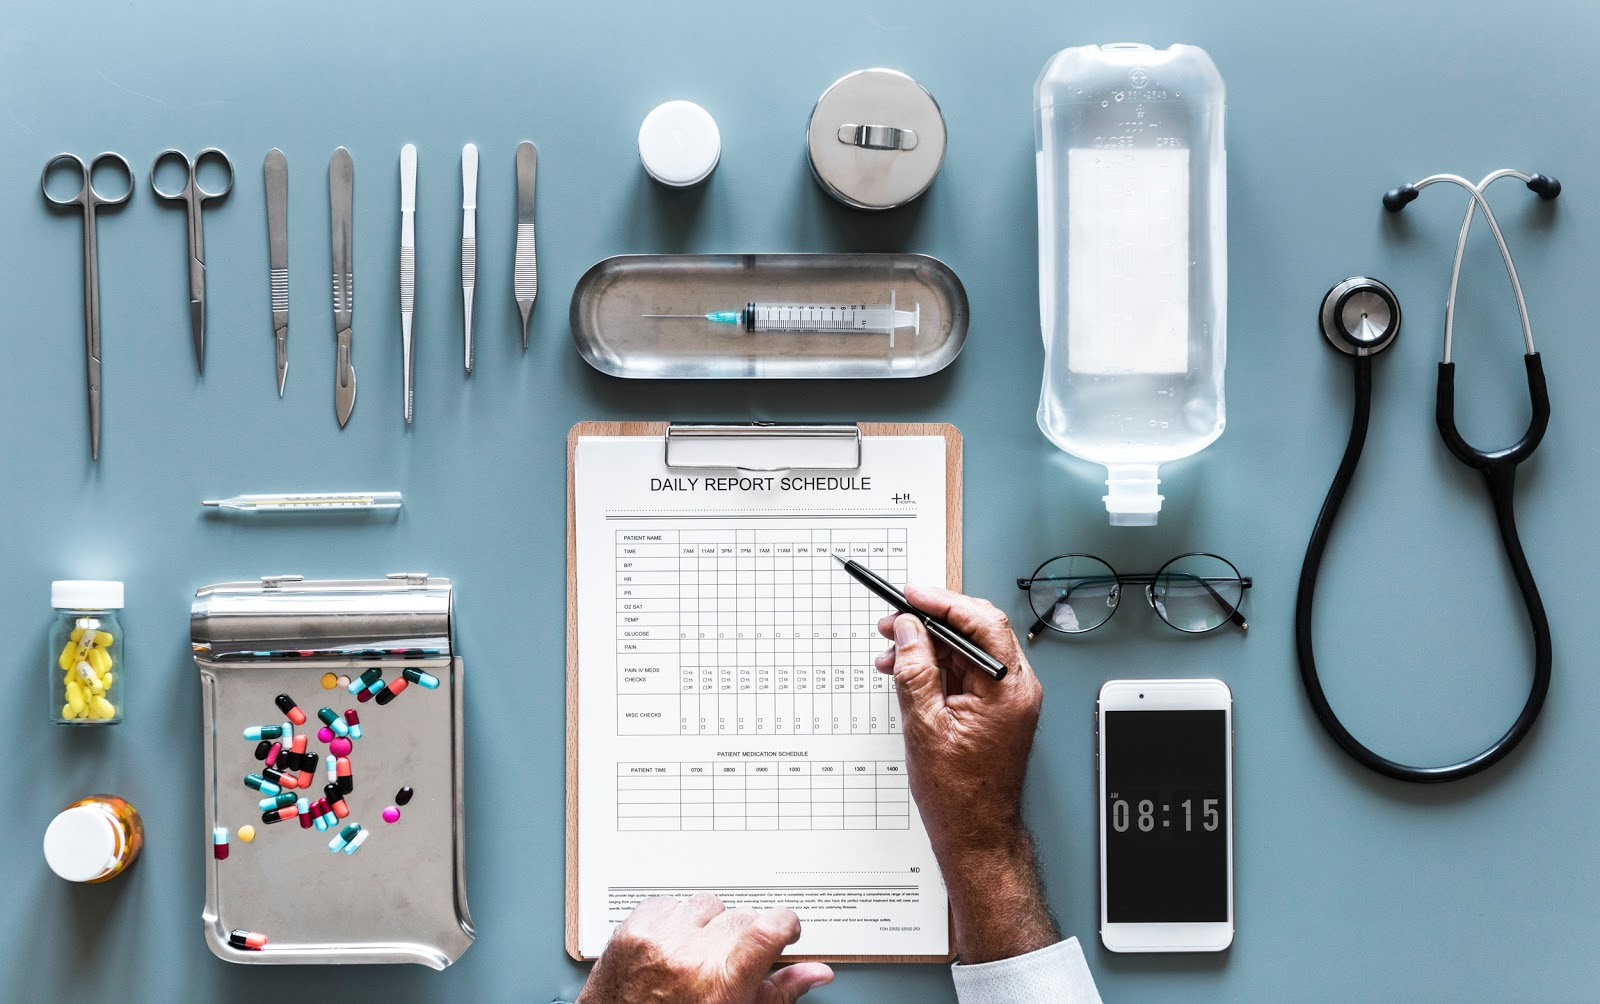 Doctor's tools and paperwork